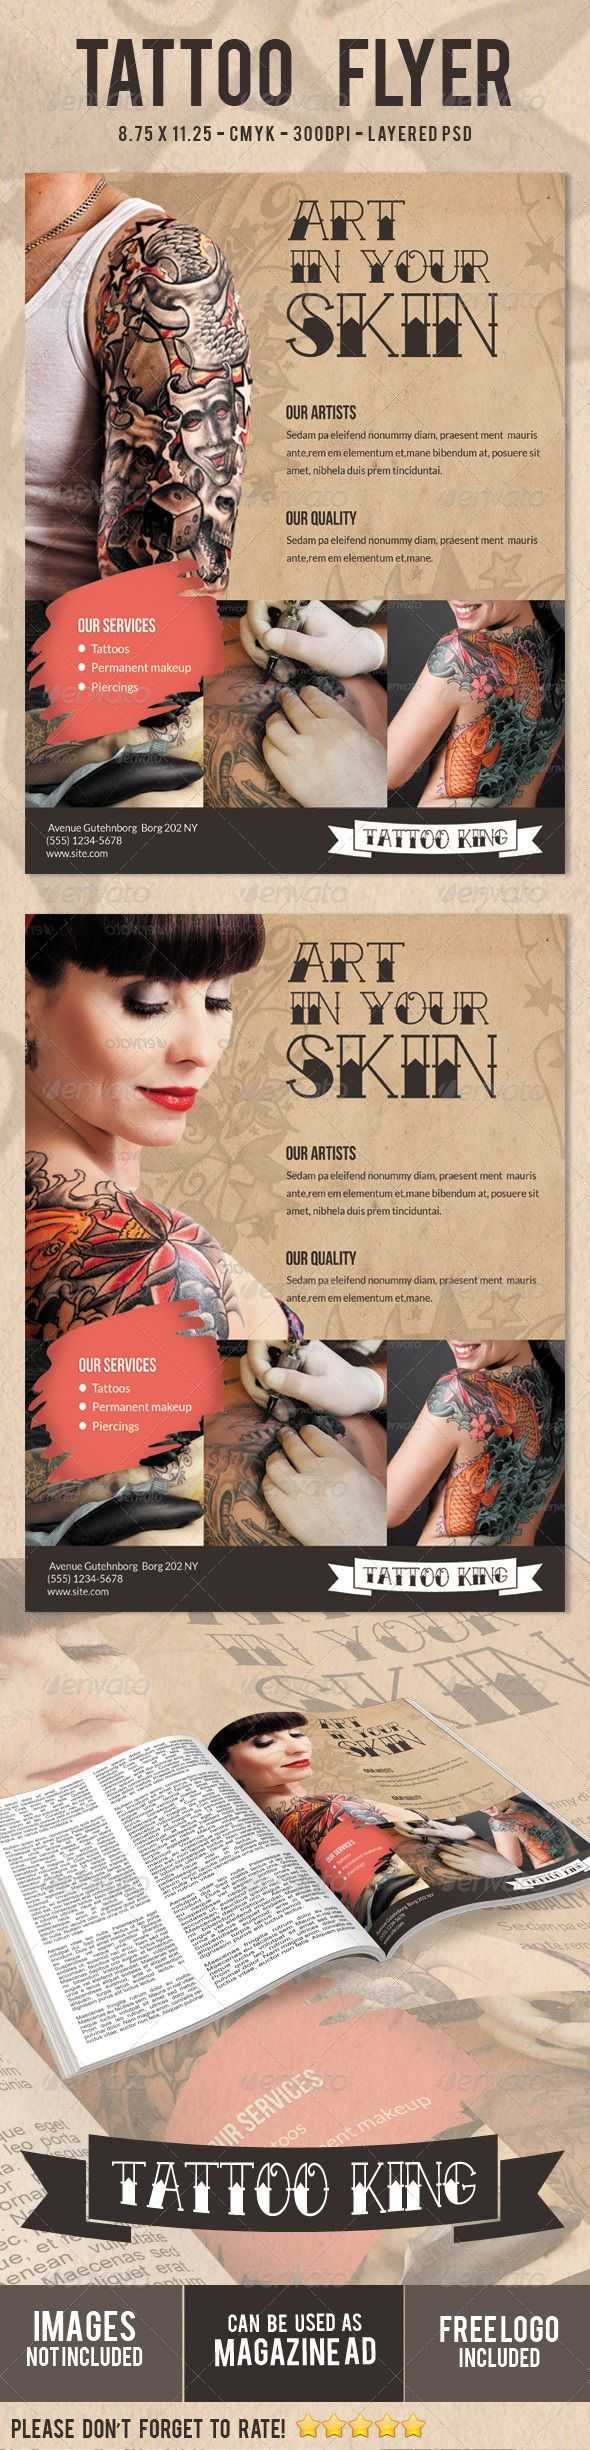 This Flyer Can be used in any Business Tattoo,piercings,permanent makeup etc     CMYK Color profile  8.75×11.25 including 0.25 bleed  300 DPI  Easy to Edit  Logo Included  Organized layers  Ready to print  Free Fonts  Background texture Included   Font Used:  Lato, Tattoo Ink and Bebas neue   Photos are not included,information in the help file.   Please don't forget to rate!      Created: 8August13